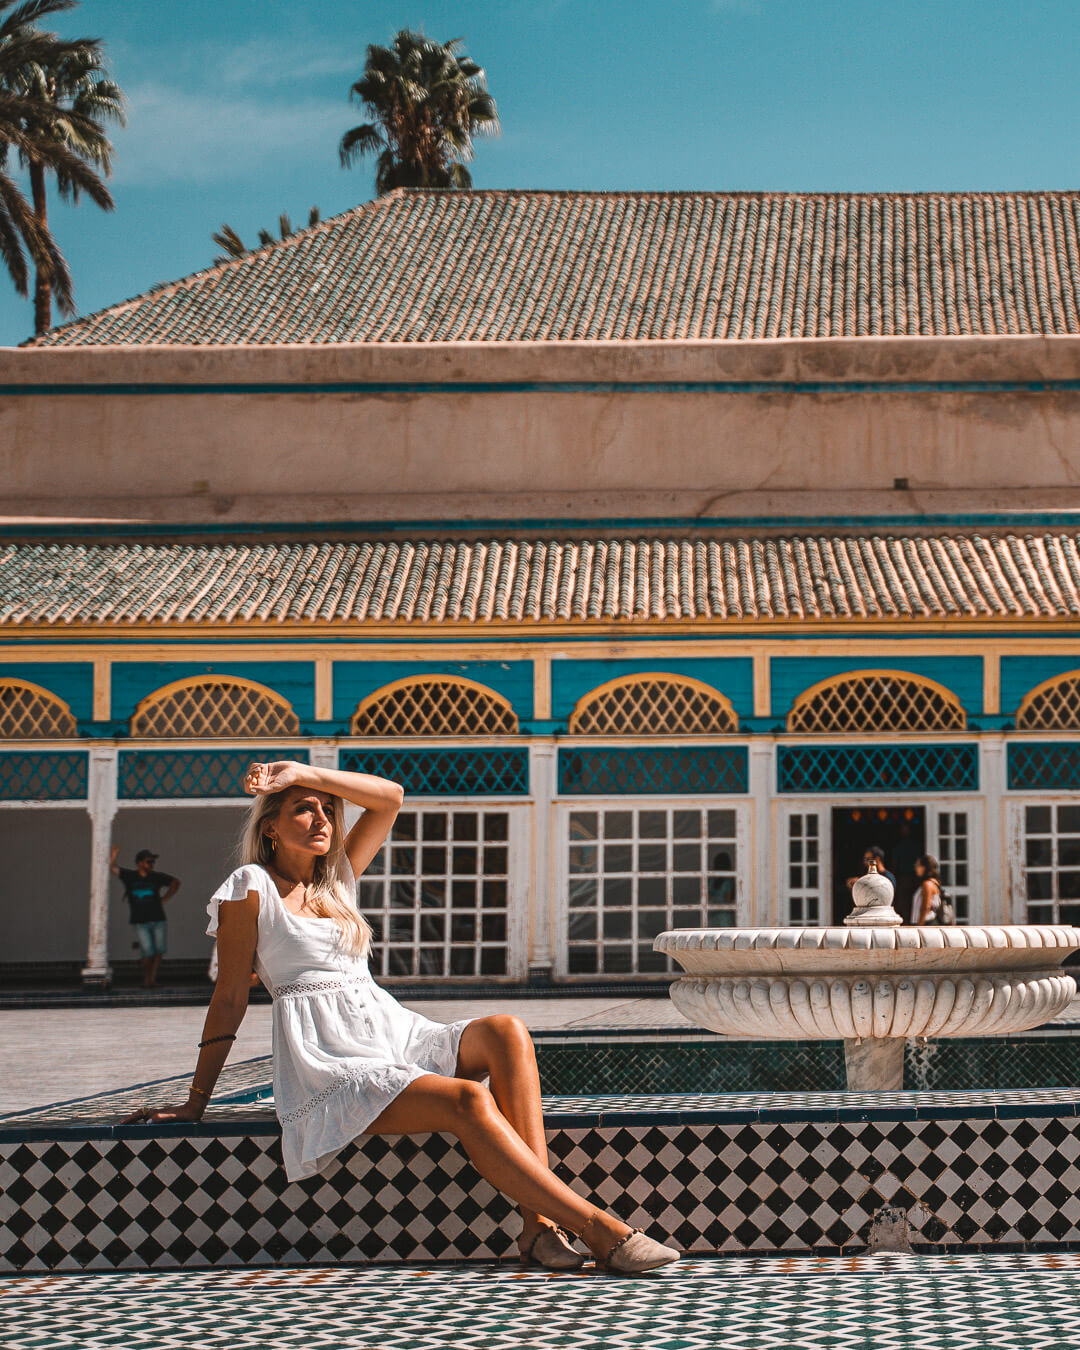 BAHIA PALACE - TOP 10 THINGS TO DO IN MARRAKECH